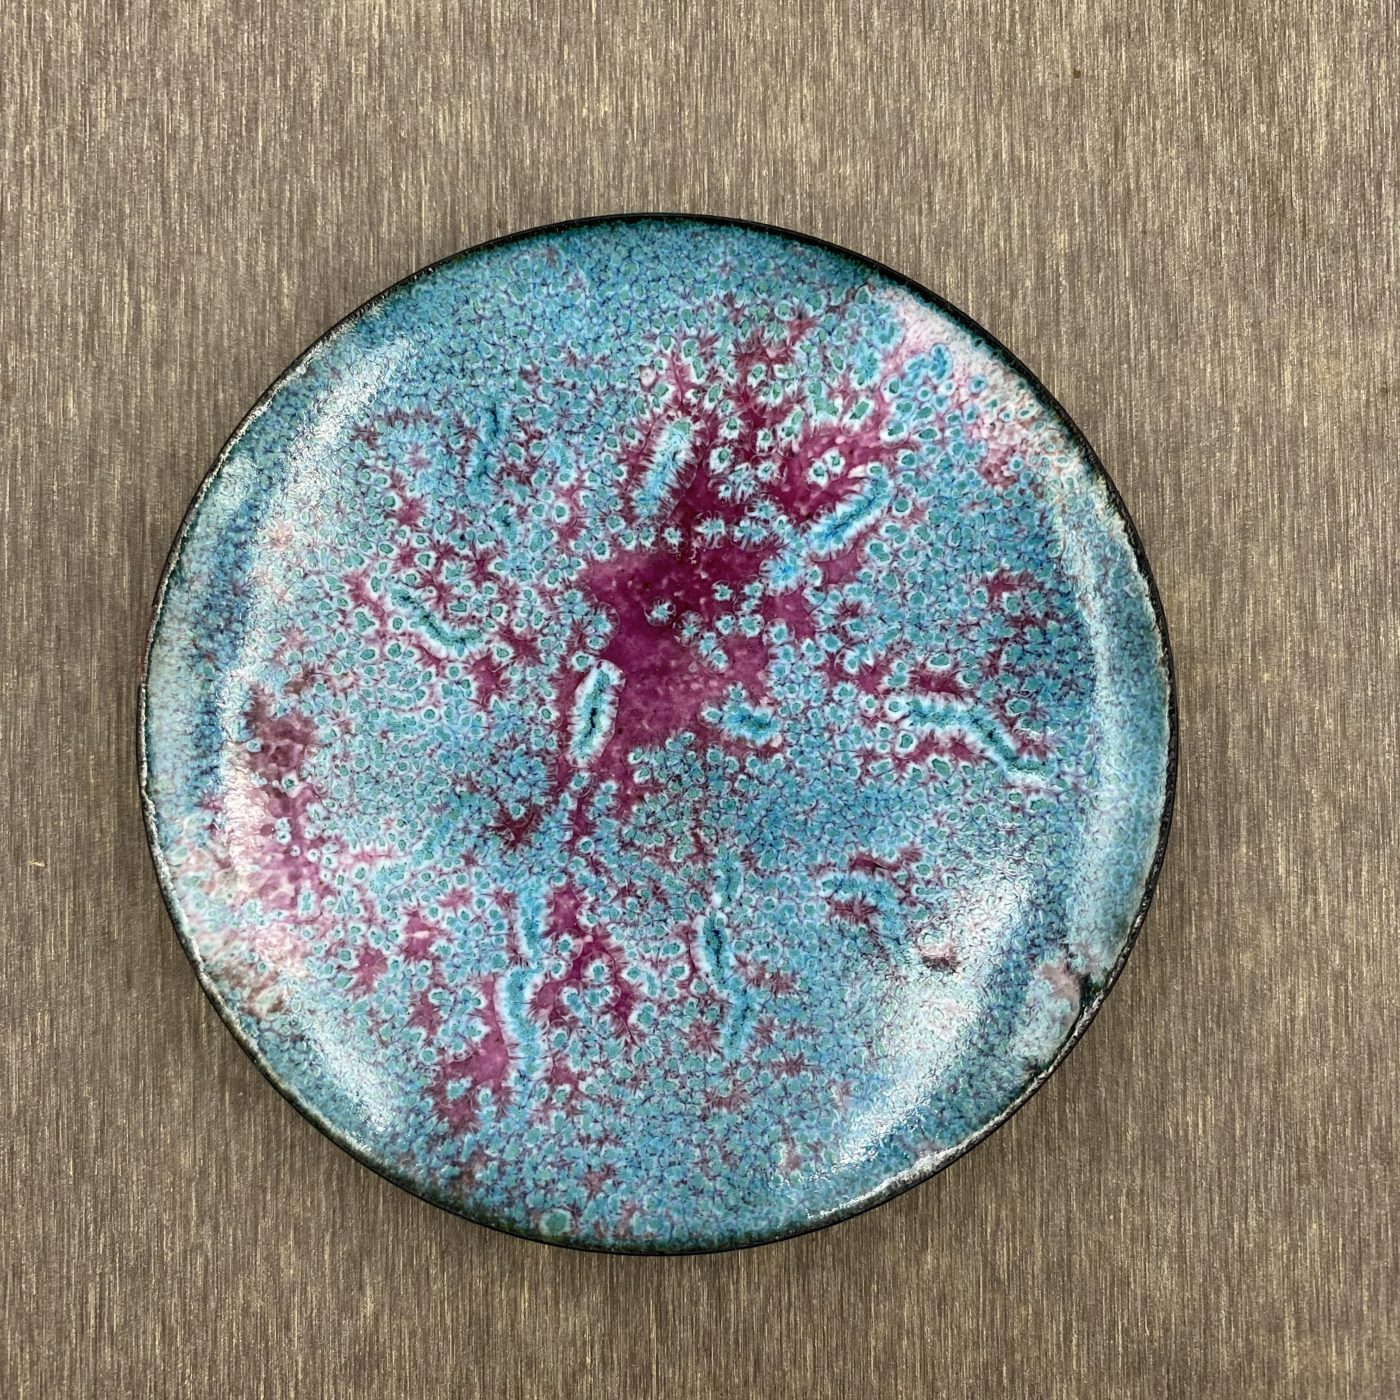 Jane Willis - Enamel